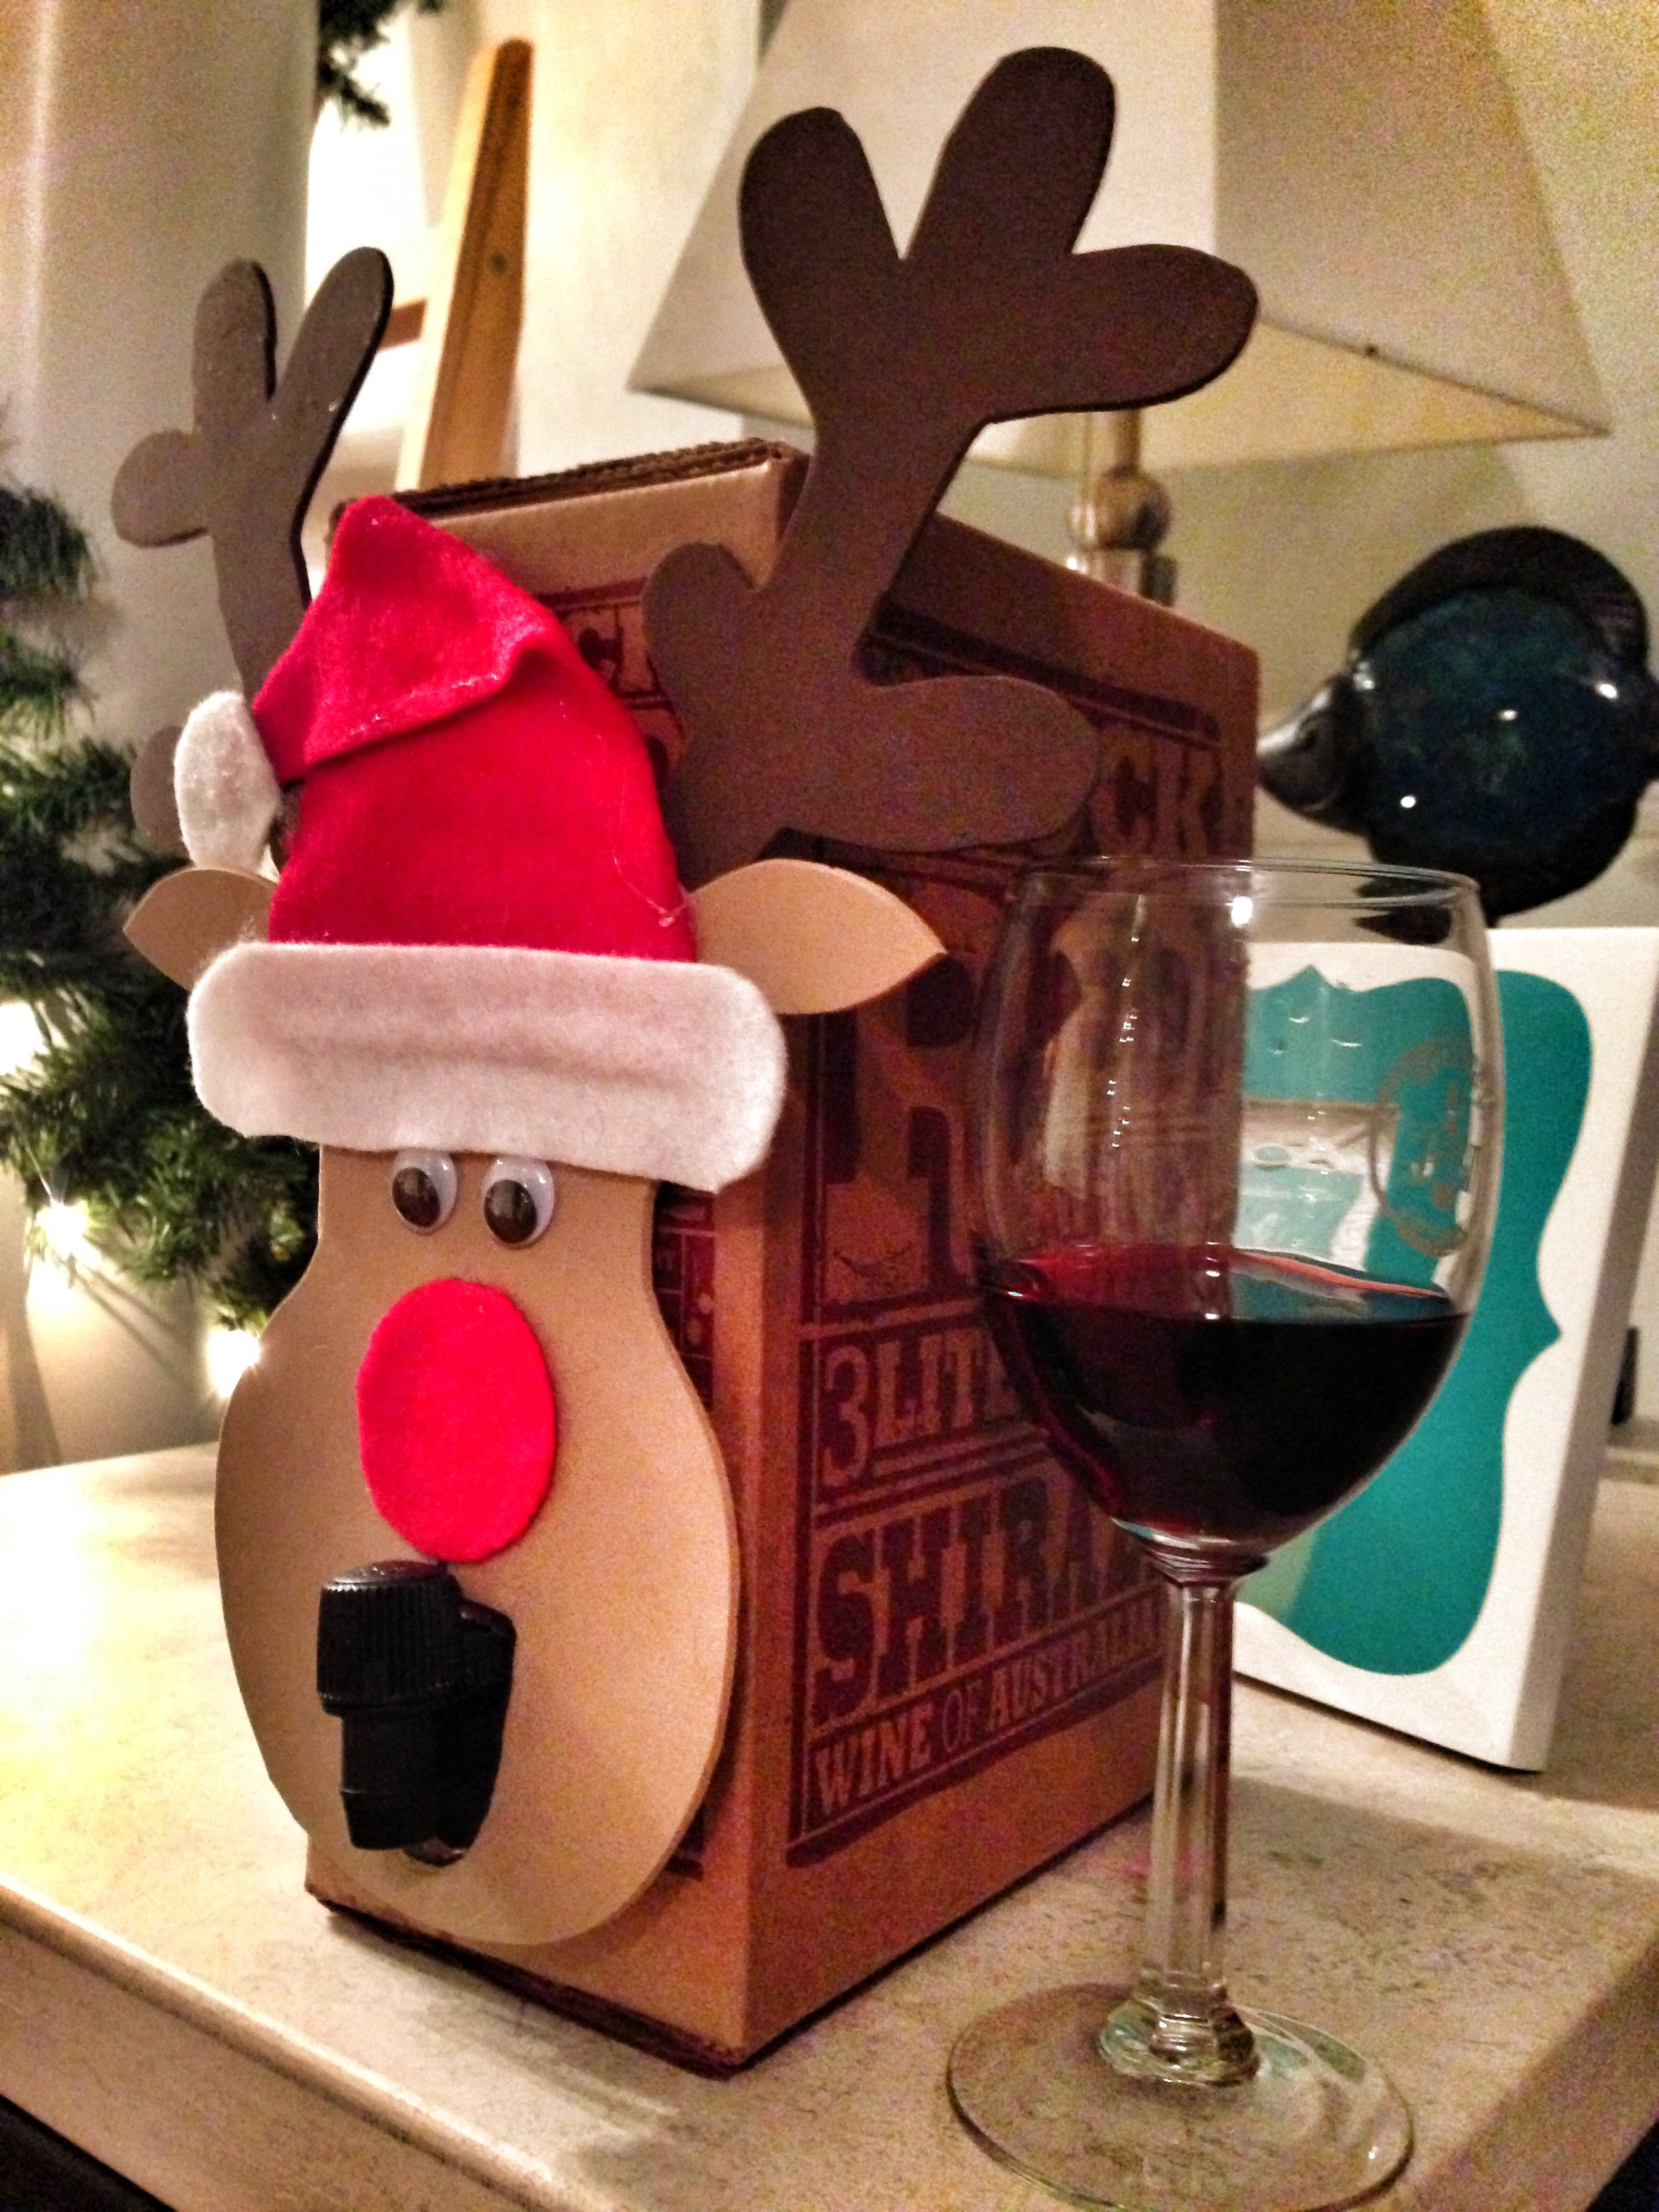 How To Turn Boxed Wine Into A Classy Secret Santa Gift Funny Christmas Gifts Christmas Party Gift Funny Secret Santa Gifts